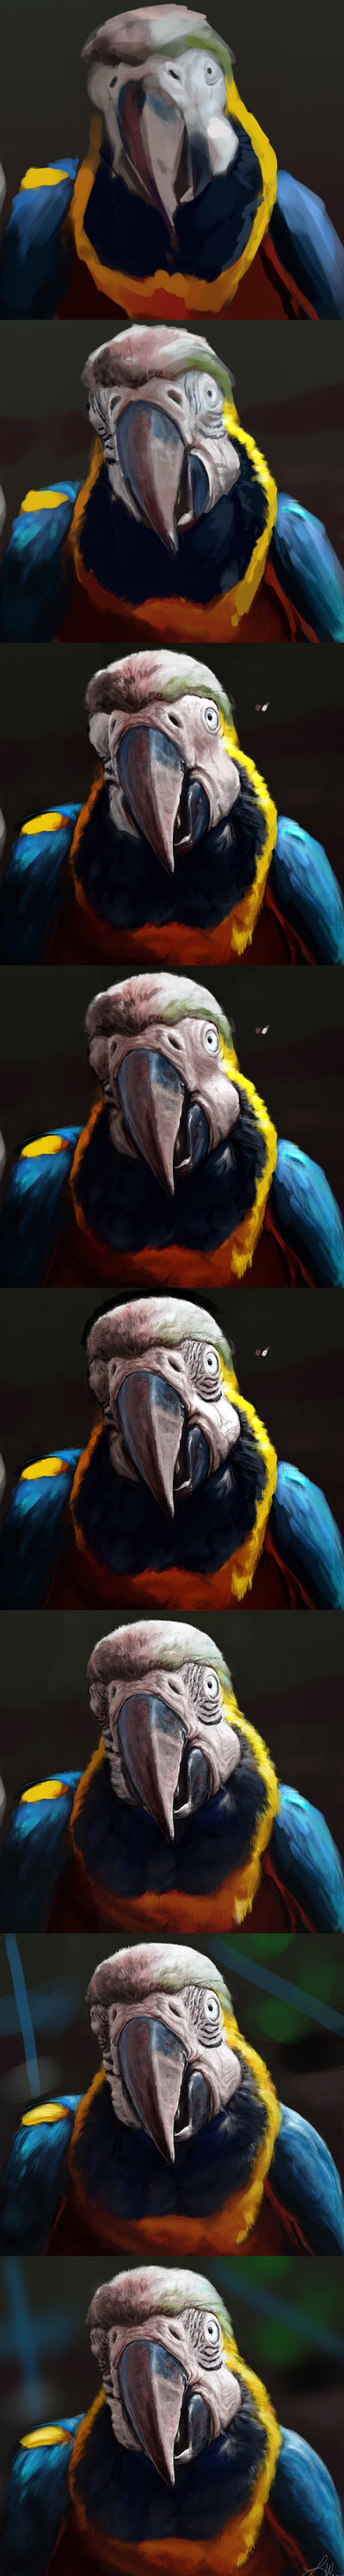 Photo Study: Macaw Steps by LindseyWArt